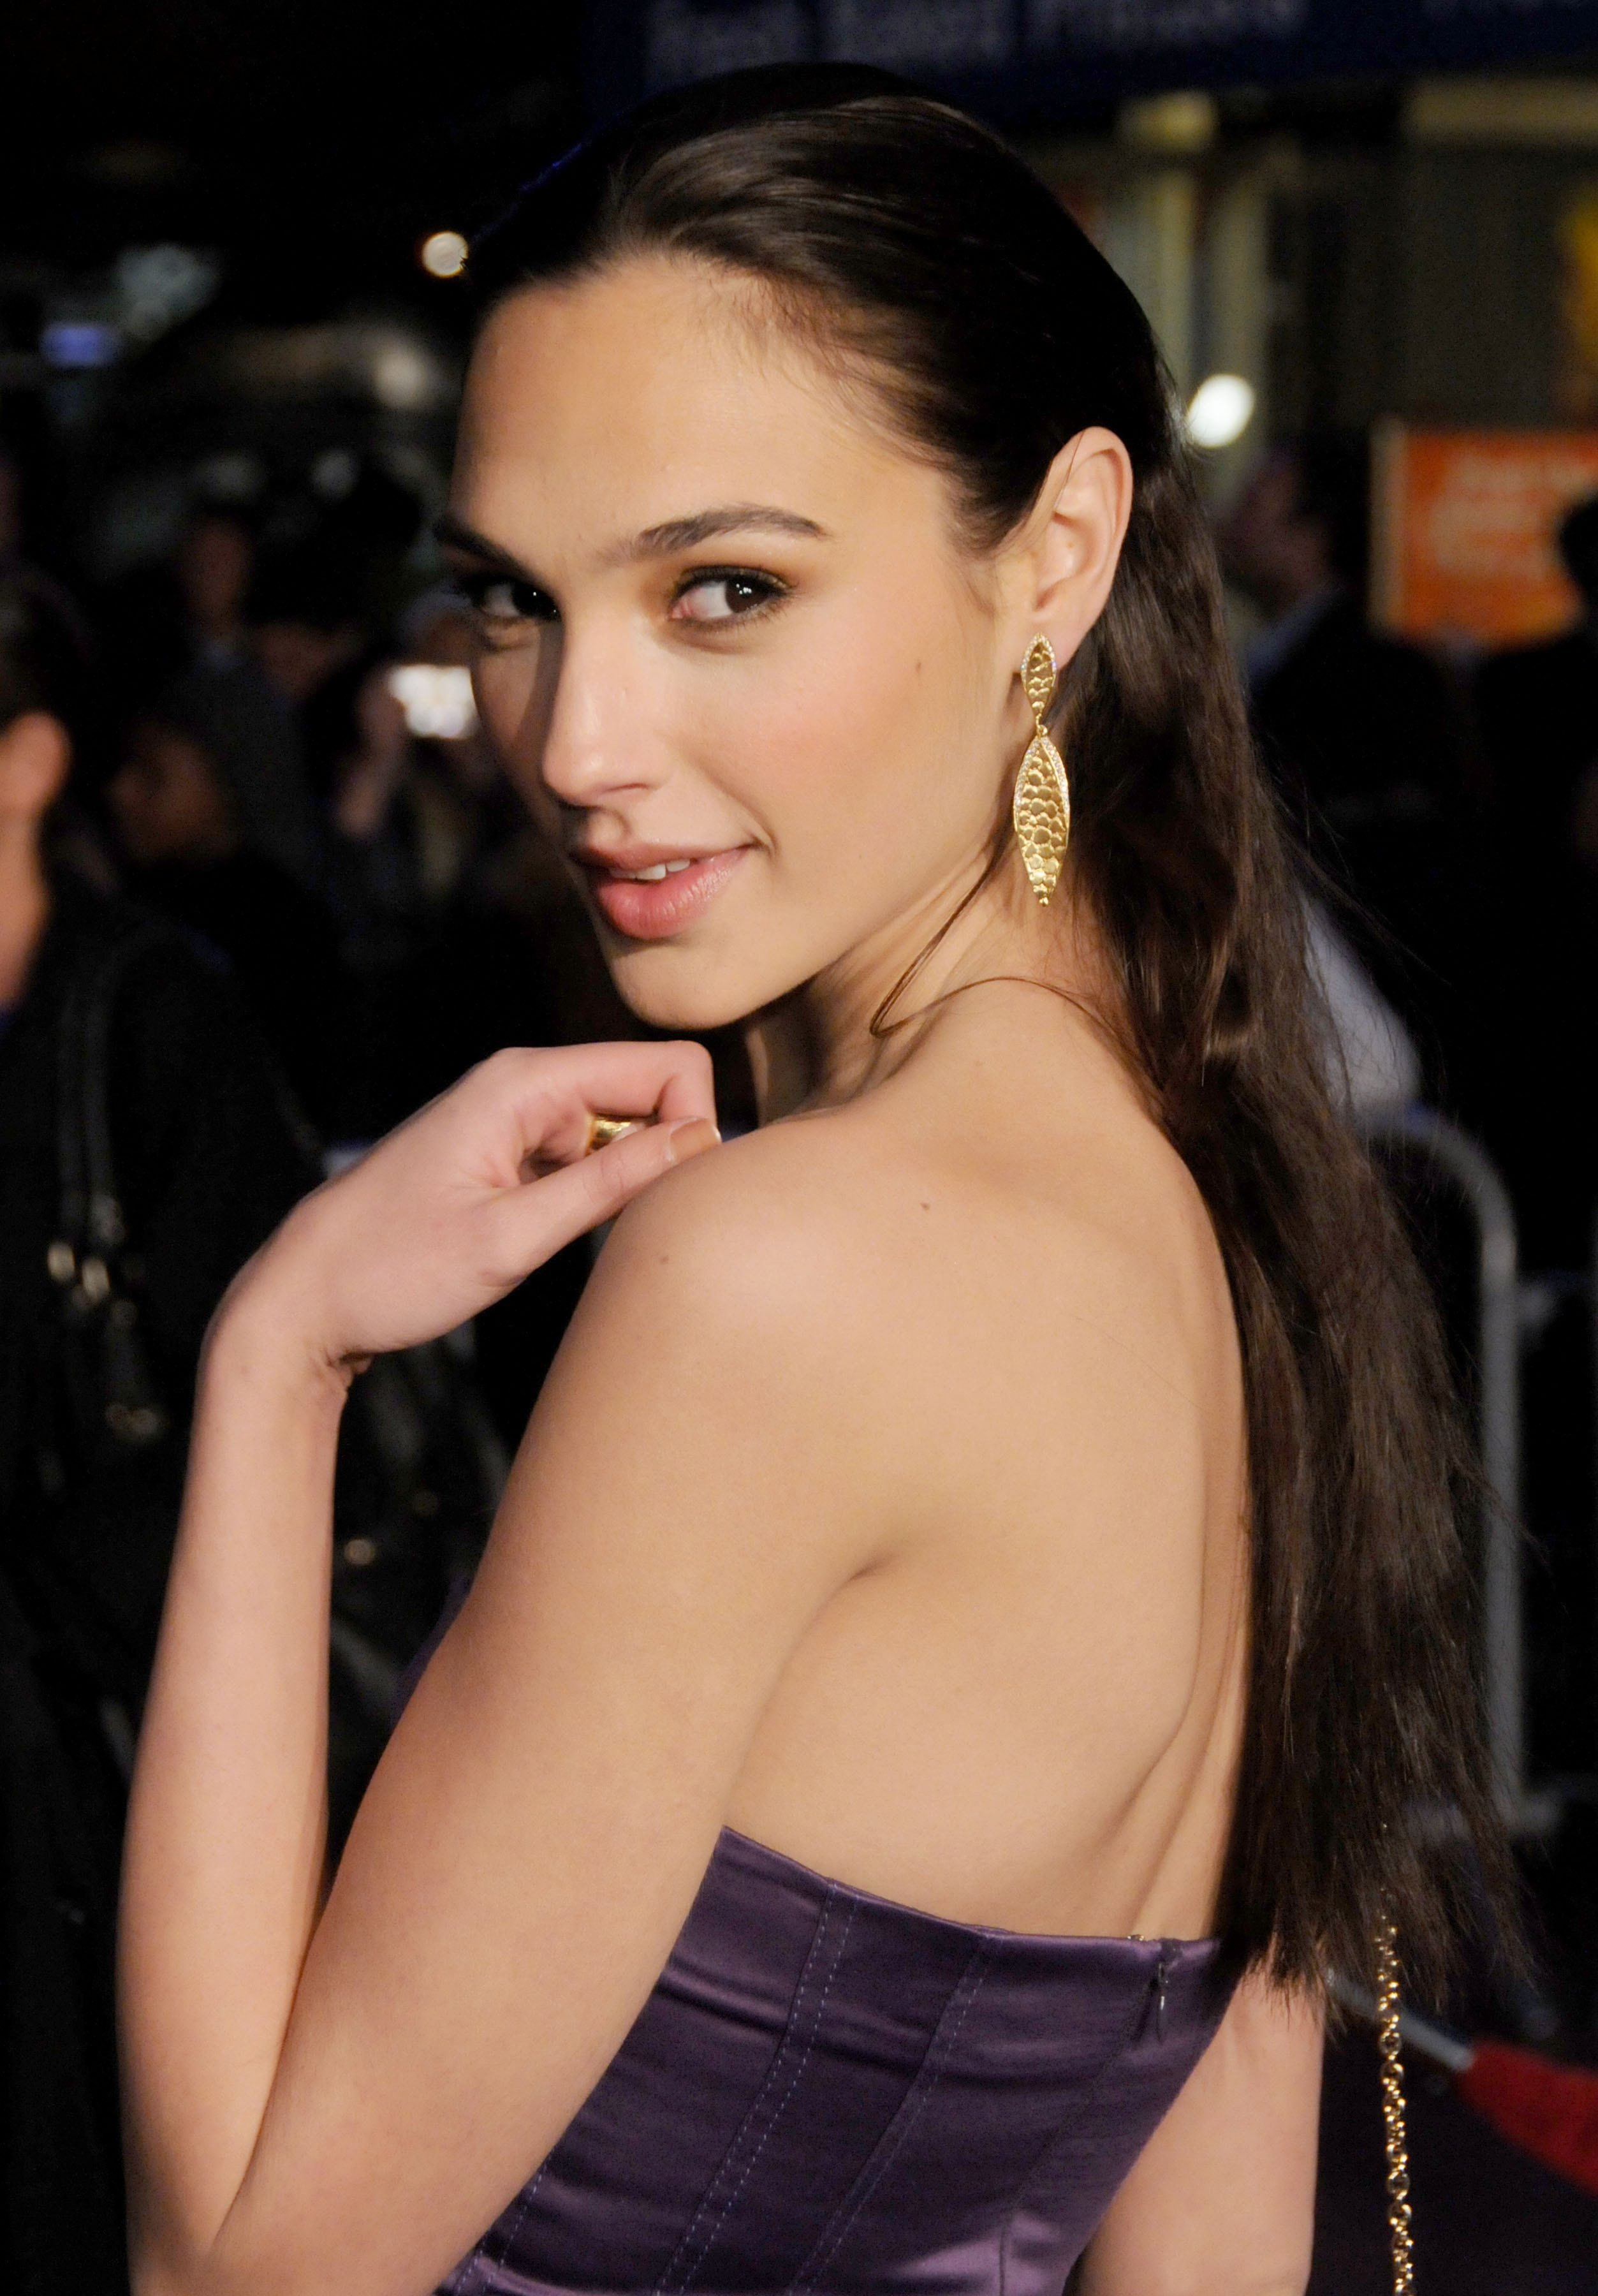 Gal Gadot photo 43 of 289 pics, wallpaper - photo #796571 ... Ryan Reynolds Md